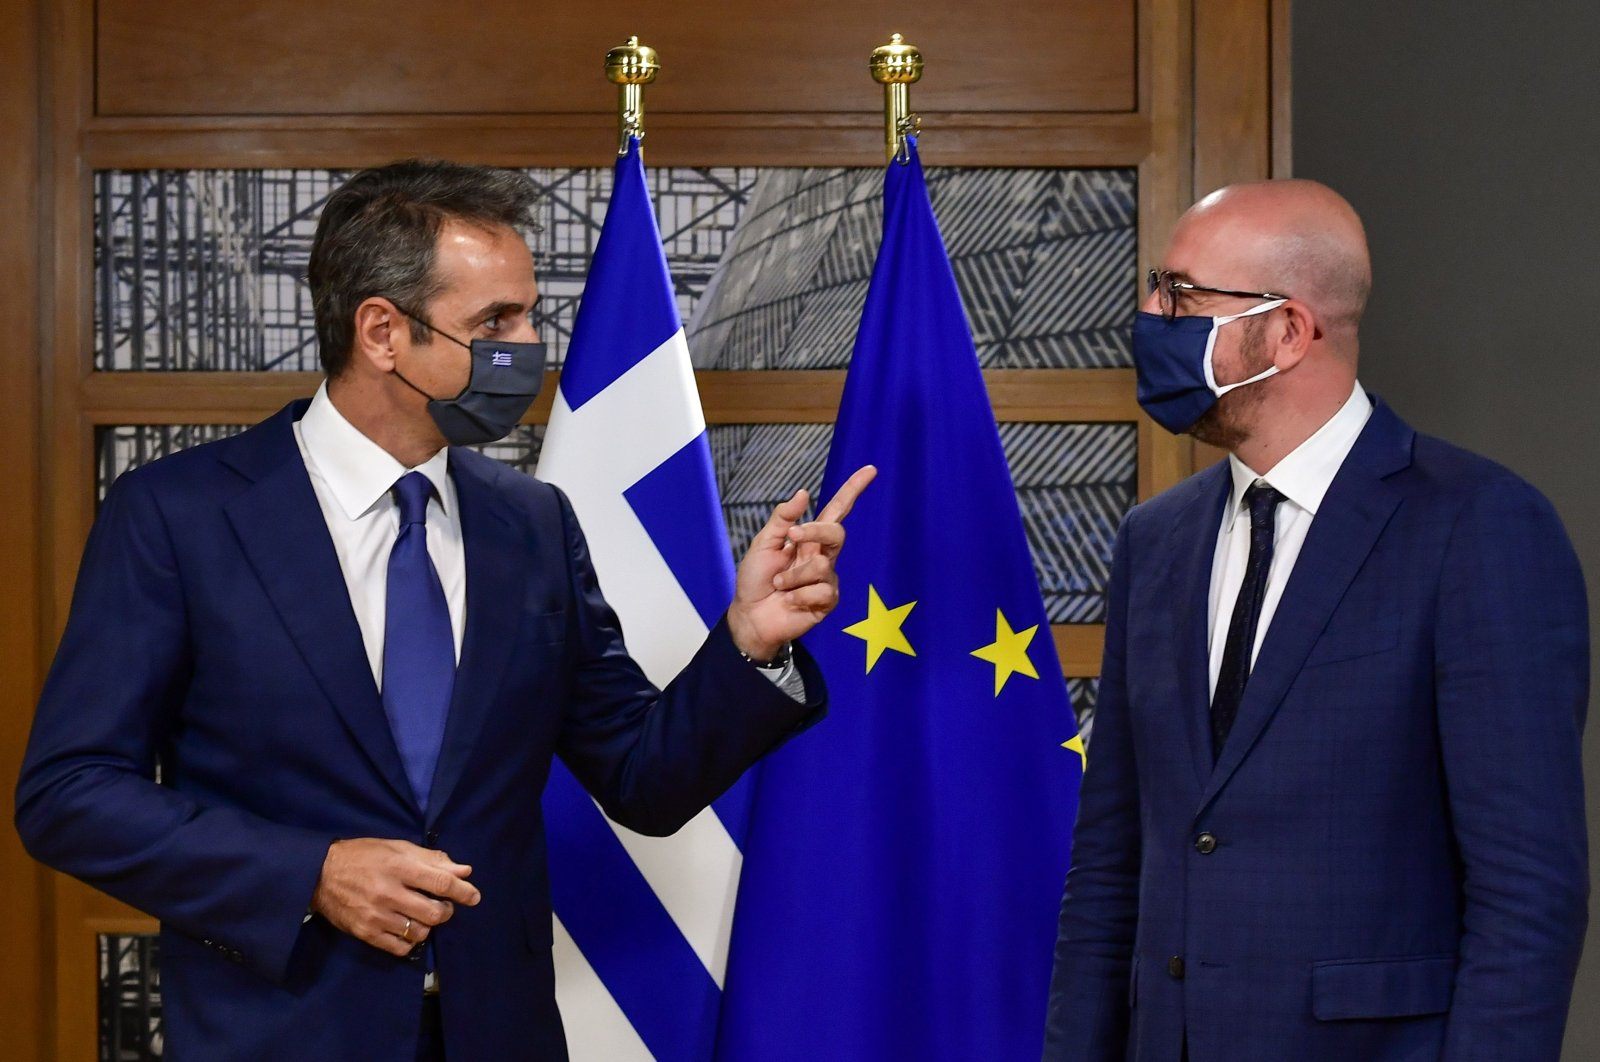 European Council President Charles Michel listens as Greek Prime Minister Kyriakos Mitsotakis speaks ahead of the second face-to-face European Union summit since the COVID-19 outbreak, in Brussels, Belgium, Oct. 1, 2020. (Reuters Photo)